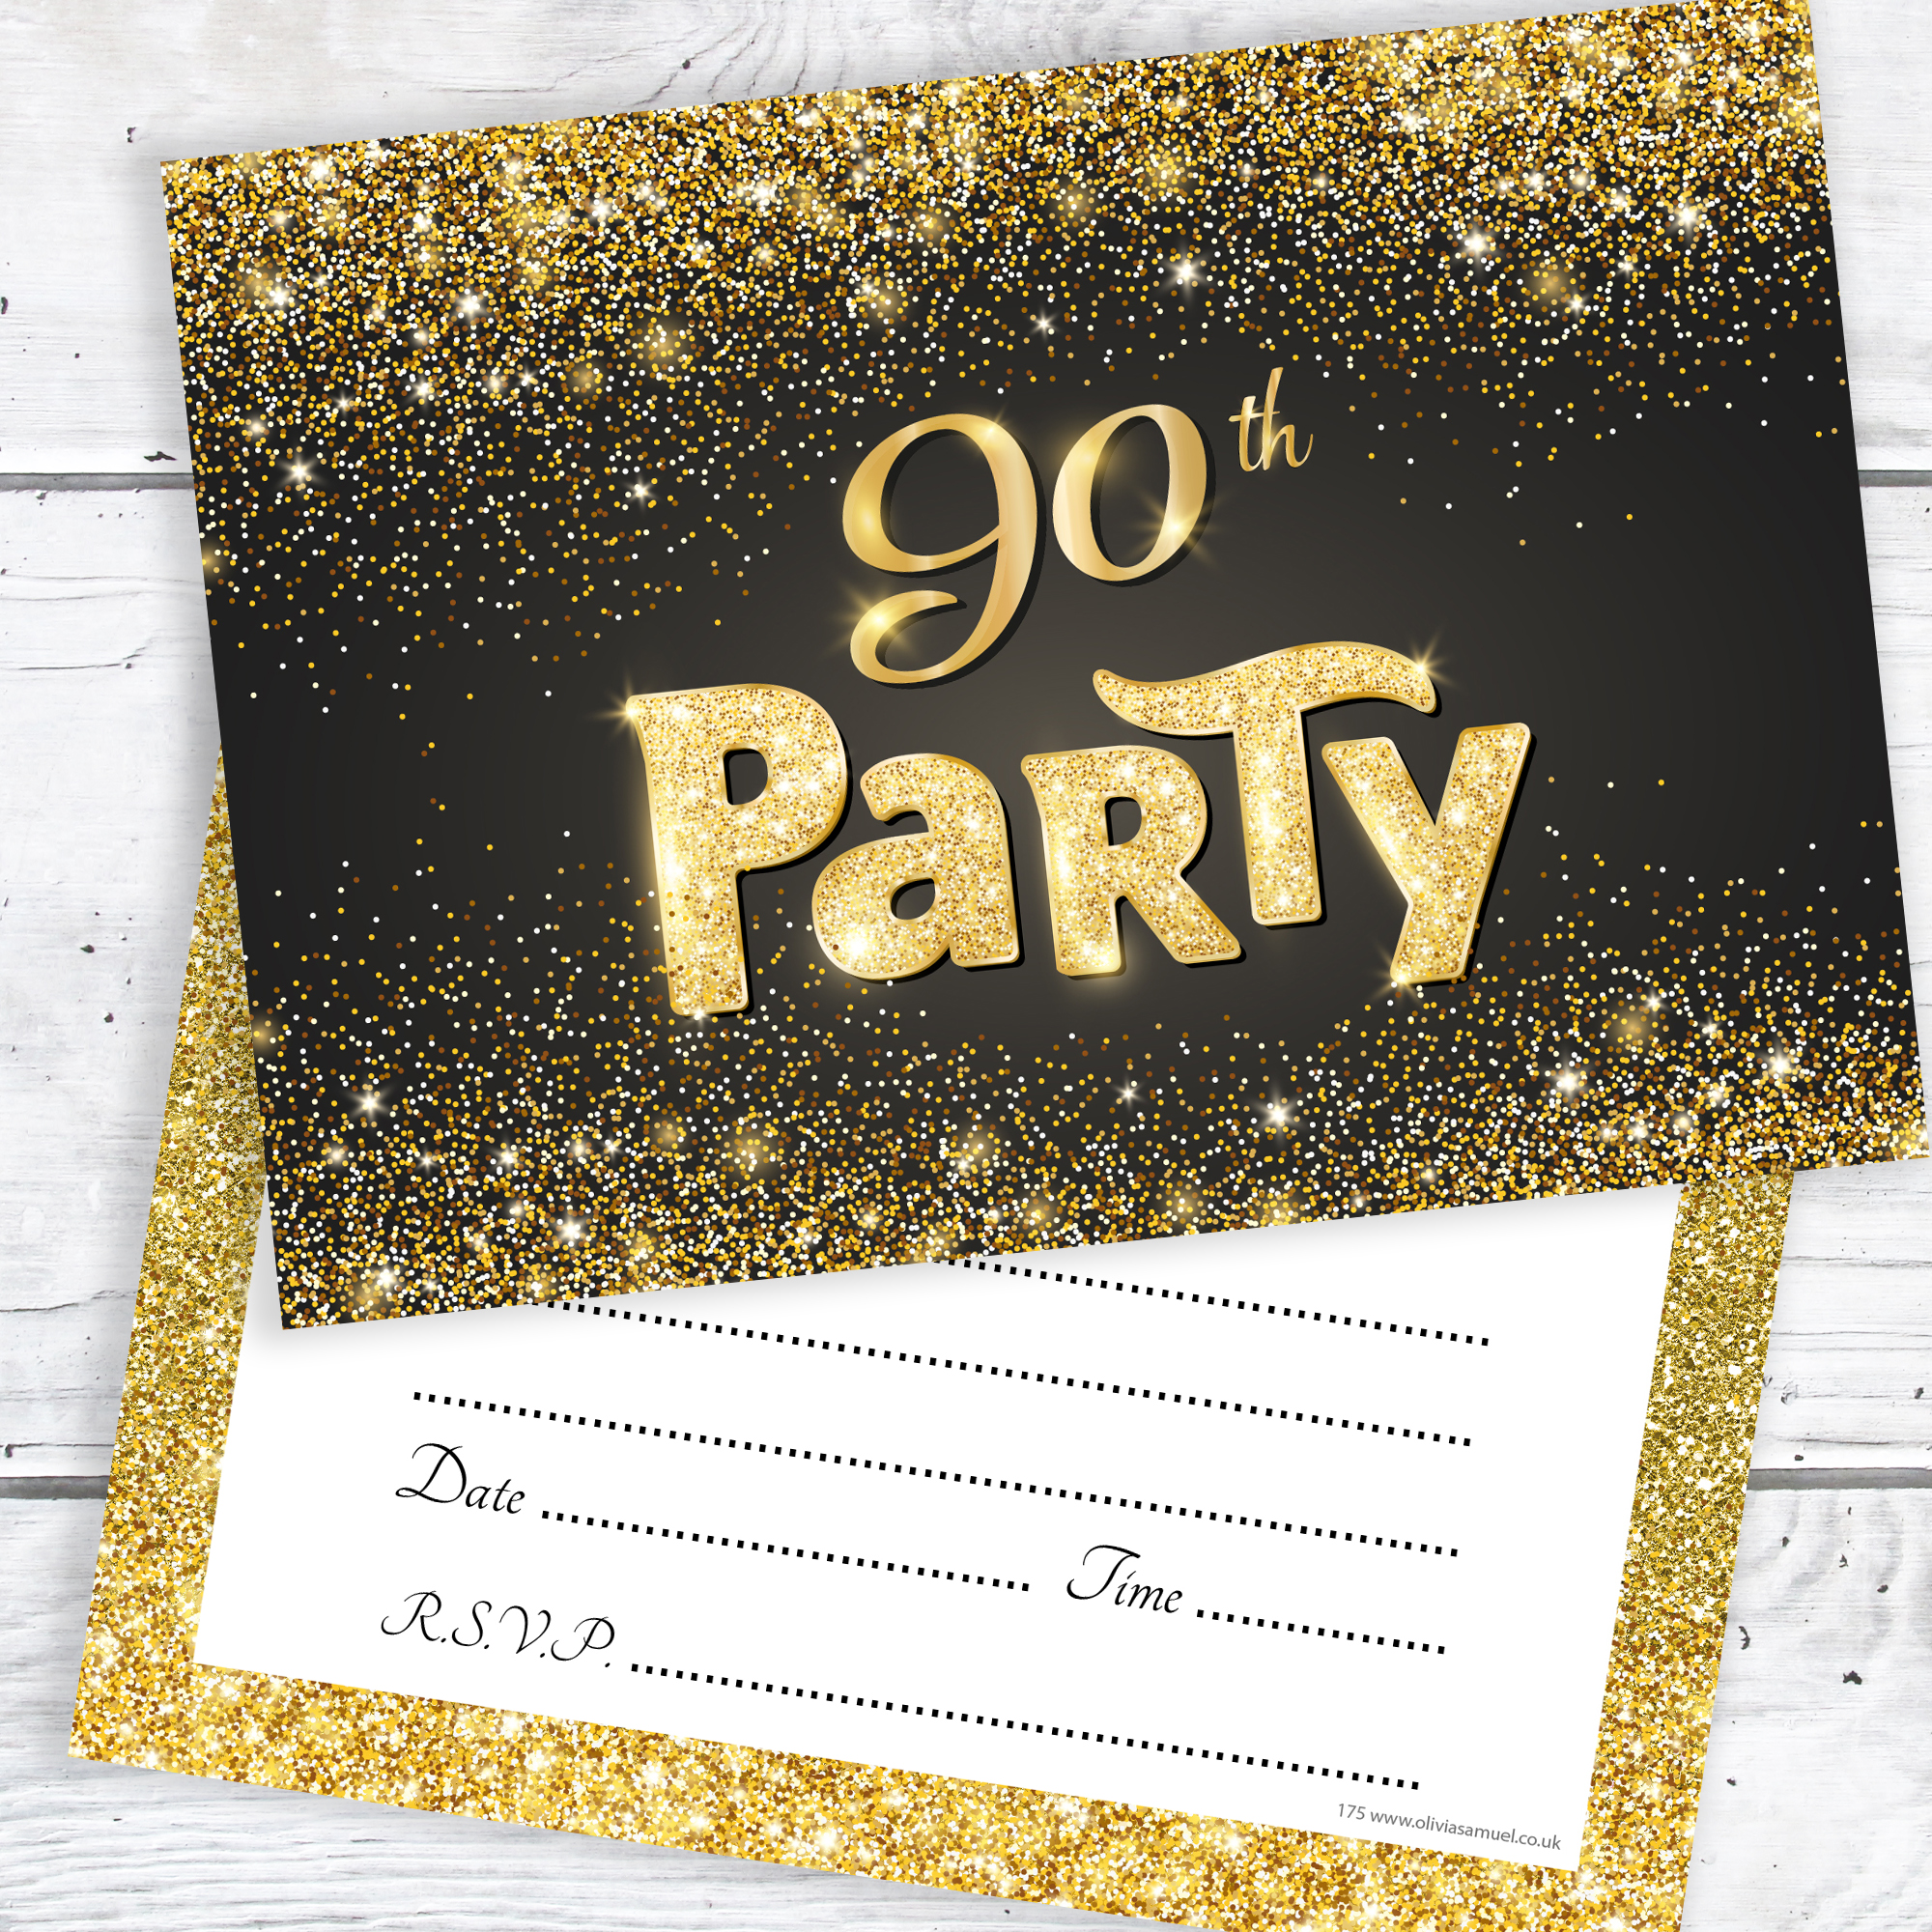 90th birthday party invitations ; 90th-Birthday-Party-Invitations-Black-and-Gold